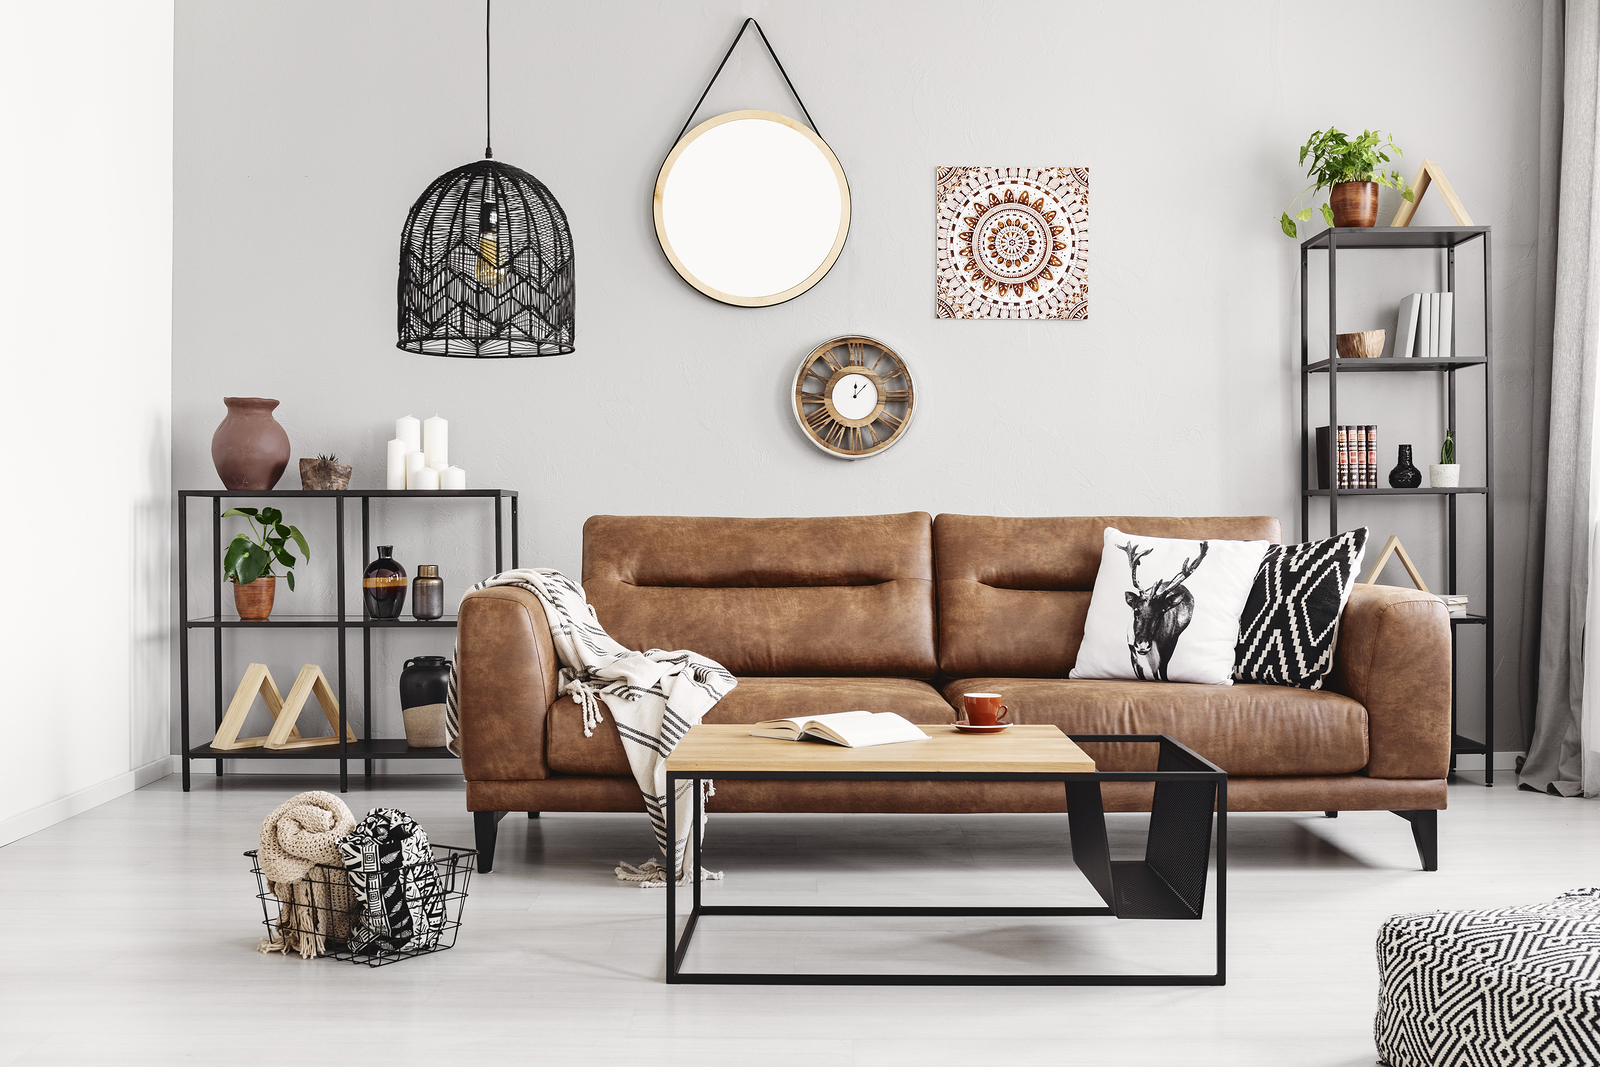 Ten modern interior design trends for 2019 arclin tfl - Interior design trends 2019 ...